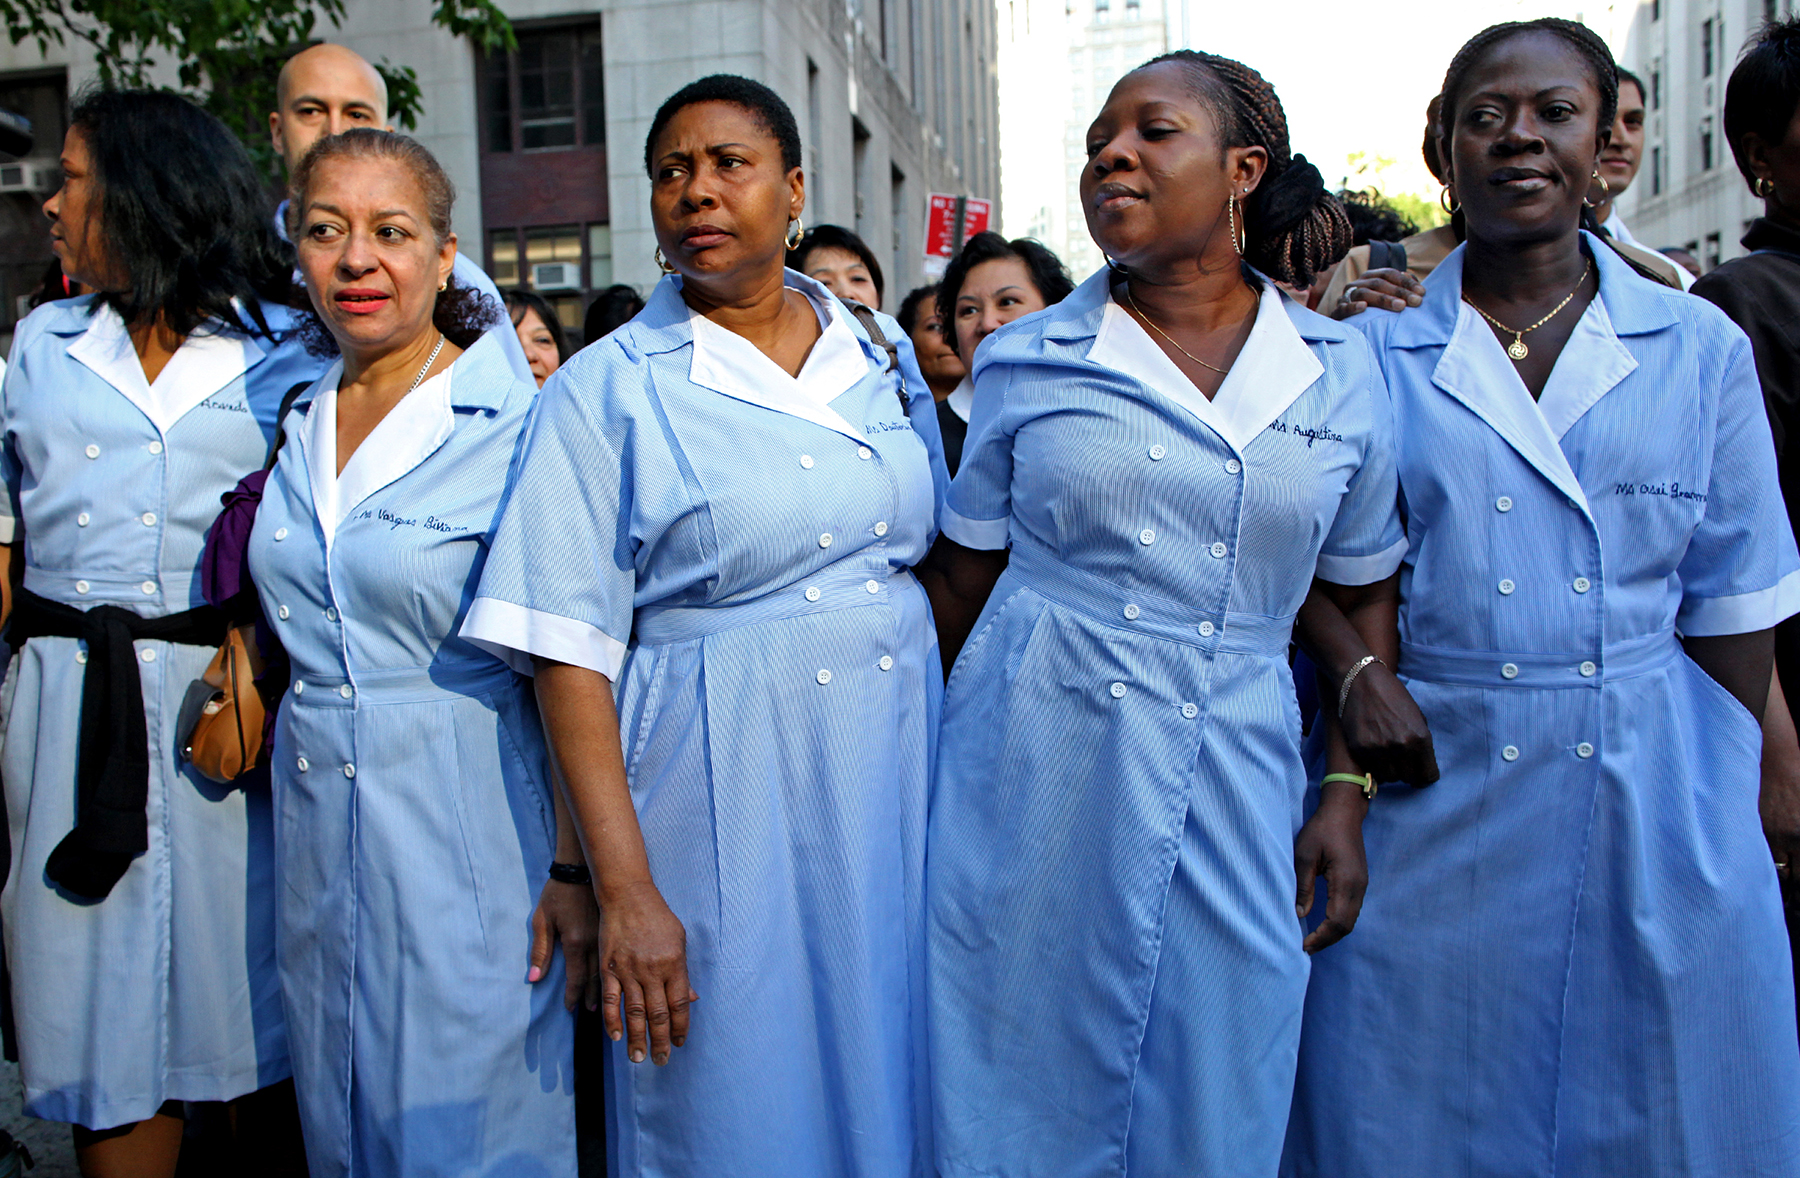 Housekeepers wait outside court for Dominique Strauss-Kahn, accused in sexual assault of colleague, 2011